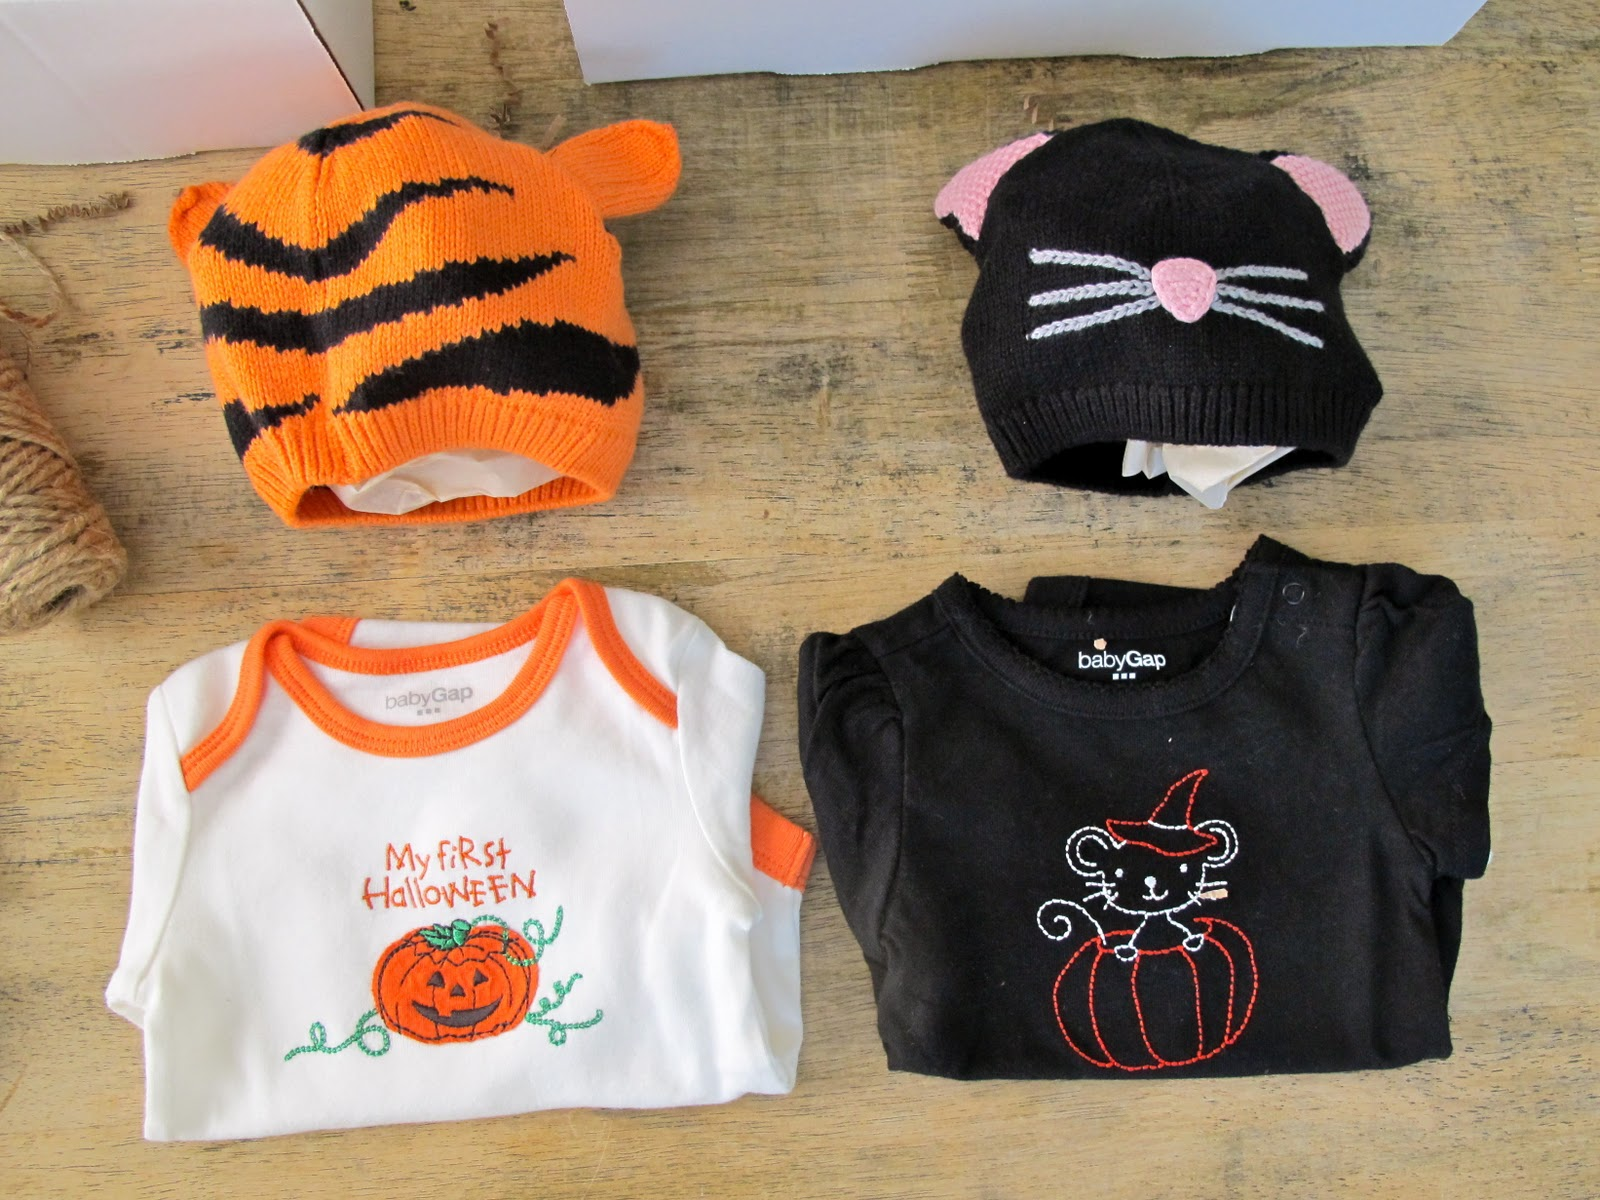 Baby Gifts For Halloween : Jenny steffens hobick halloween gifts in the mail baby